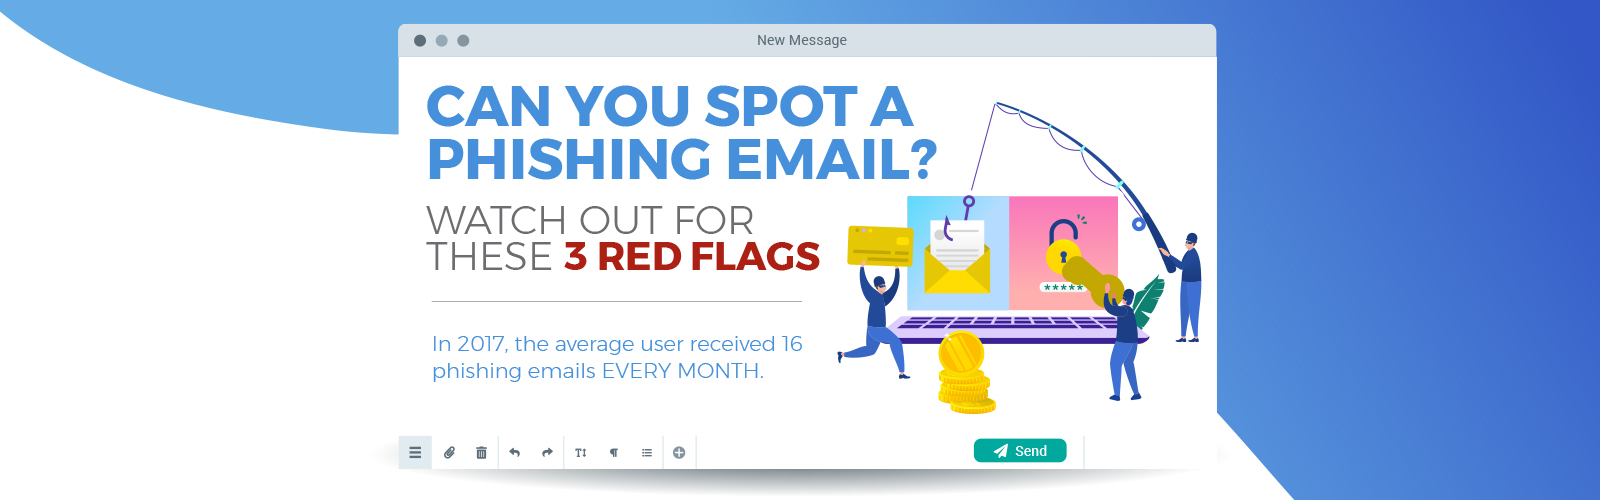 Infographic-Can You Spot a Phishing Email - Banner